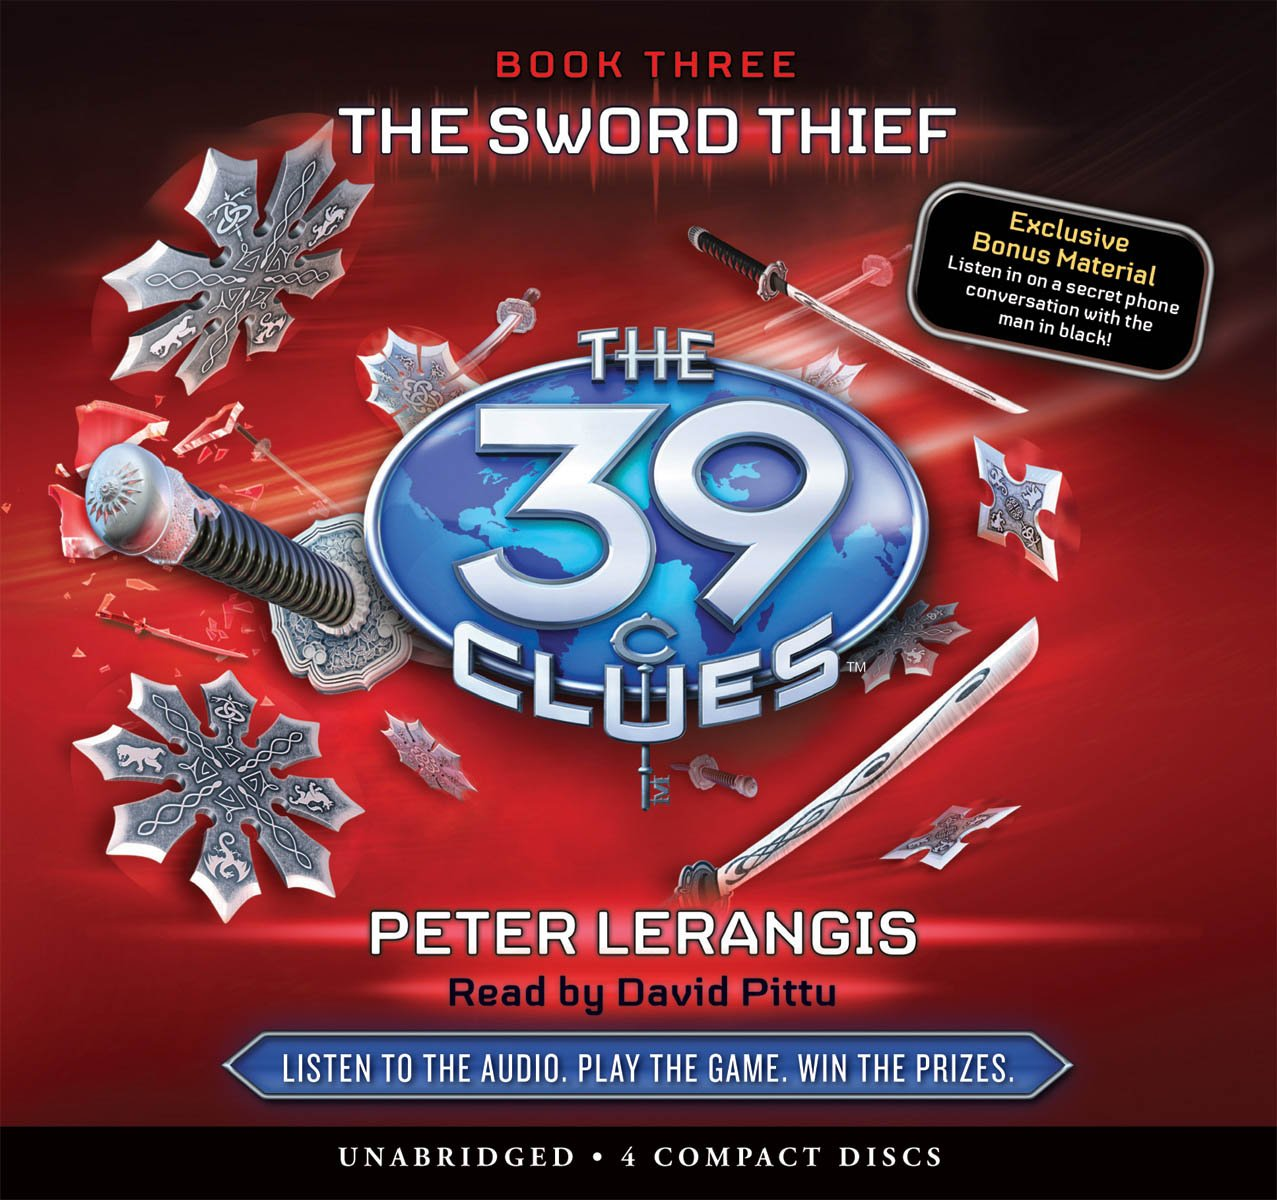 The Sword Thief (The 39 Clues, Book 3) - Audio Library Edition